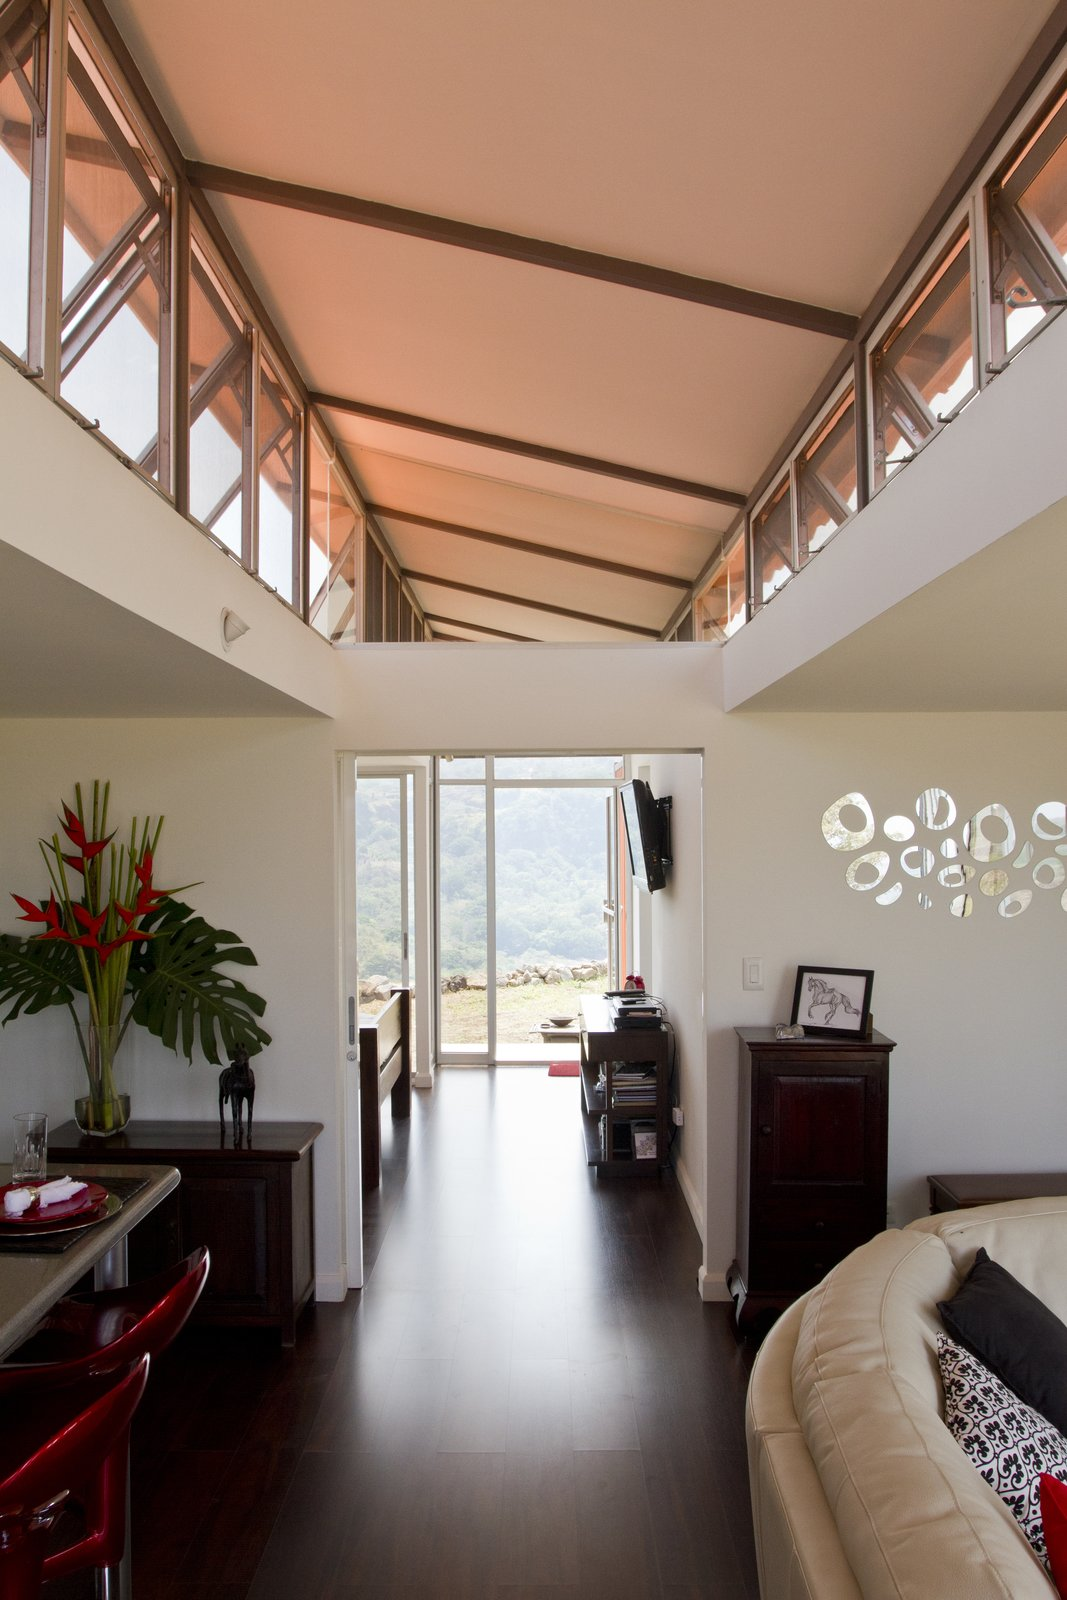 Wood floors were installed throughout the entire house. Walls are formed by simple plasterboard partitions, and enhanced with industrial-grade insulation.  A Budget-Friendly Shipping Container Home in Costa Rica  by Tiffany Jow